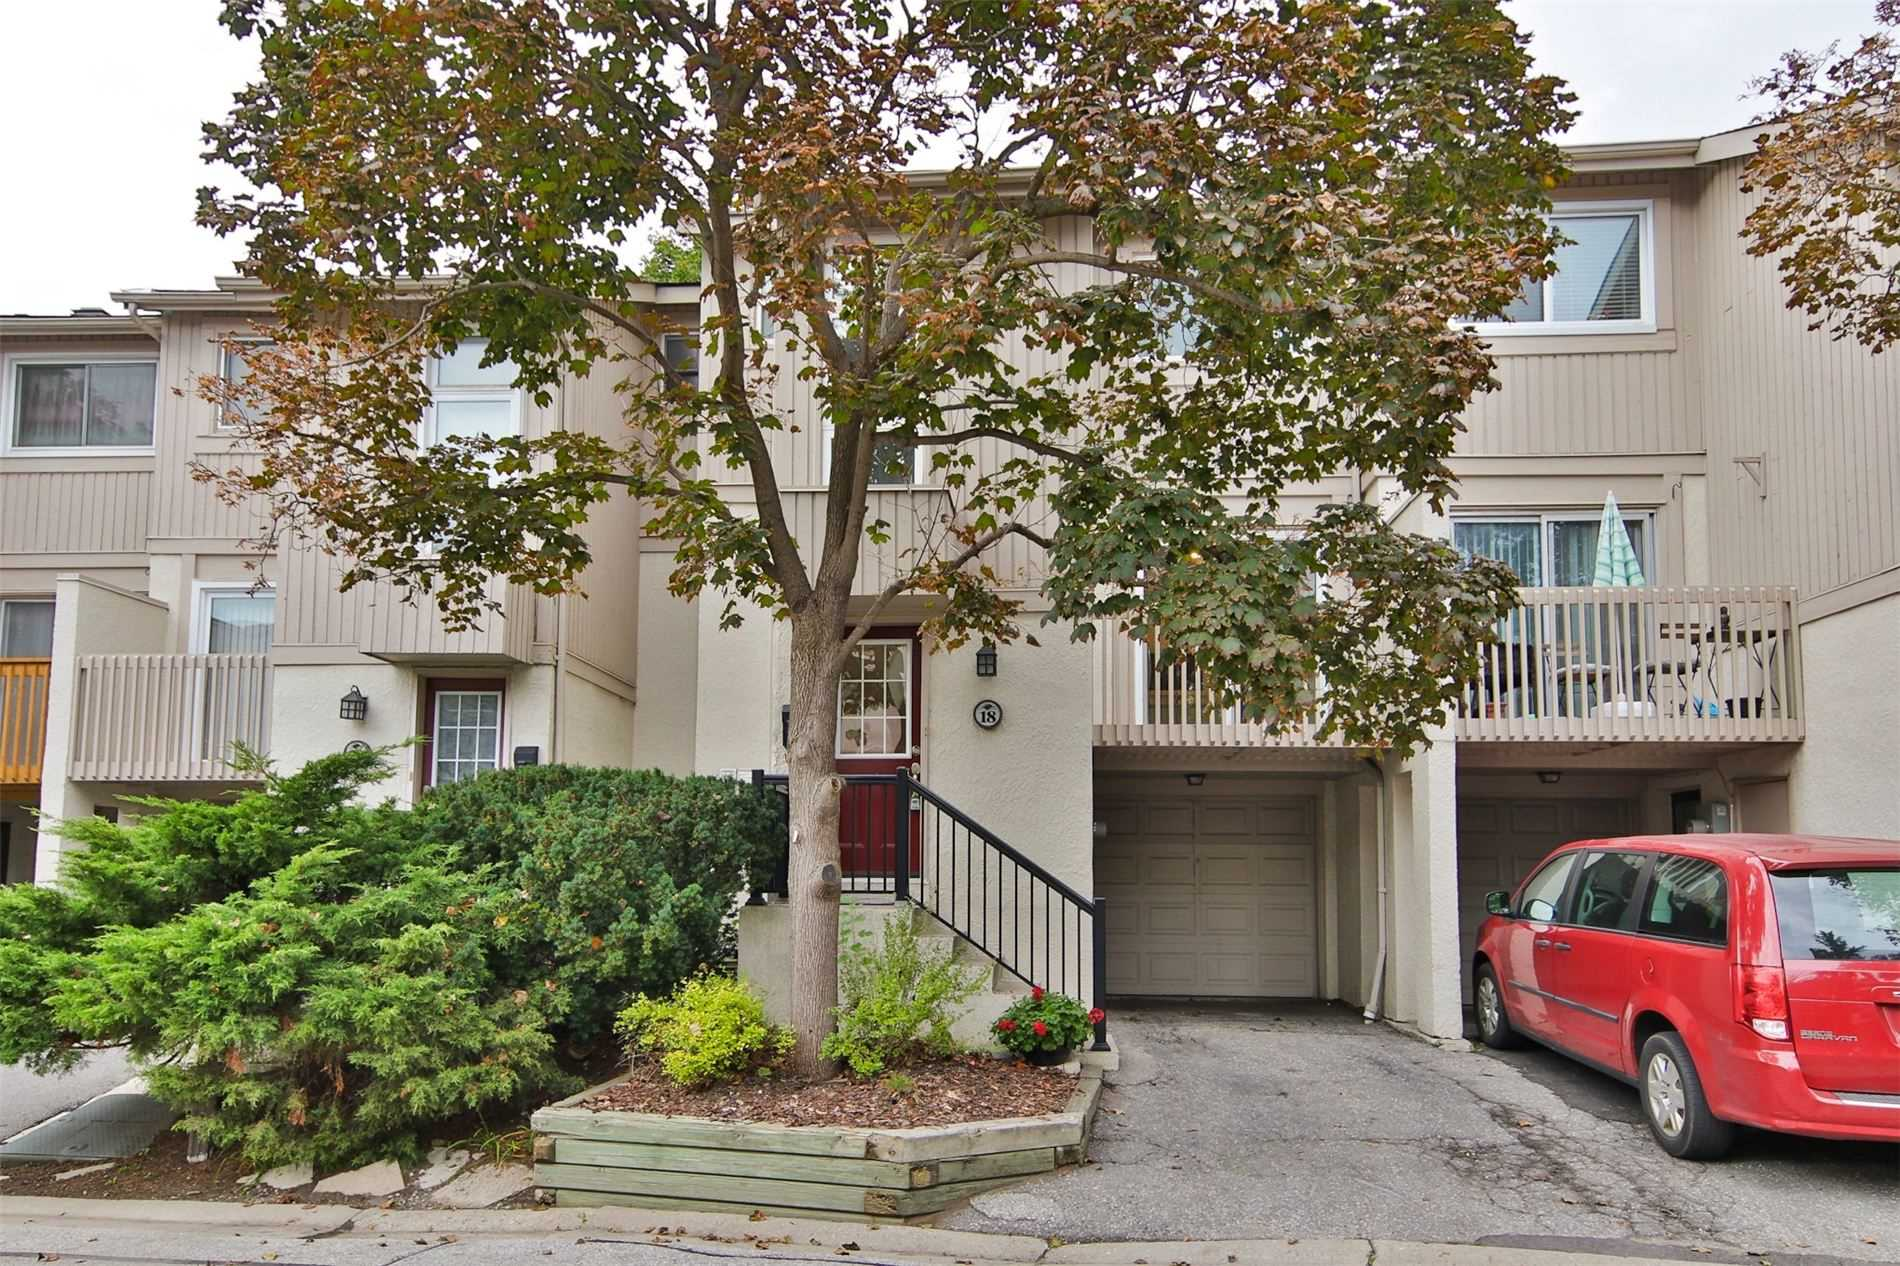 Condo Townhouse For Sale In Toronto , 3 Bedrooms Bedrooms, ,2 BathroomsBathrooms,Condo Townhouse,For Sale,Cheryl Shepway